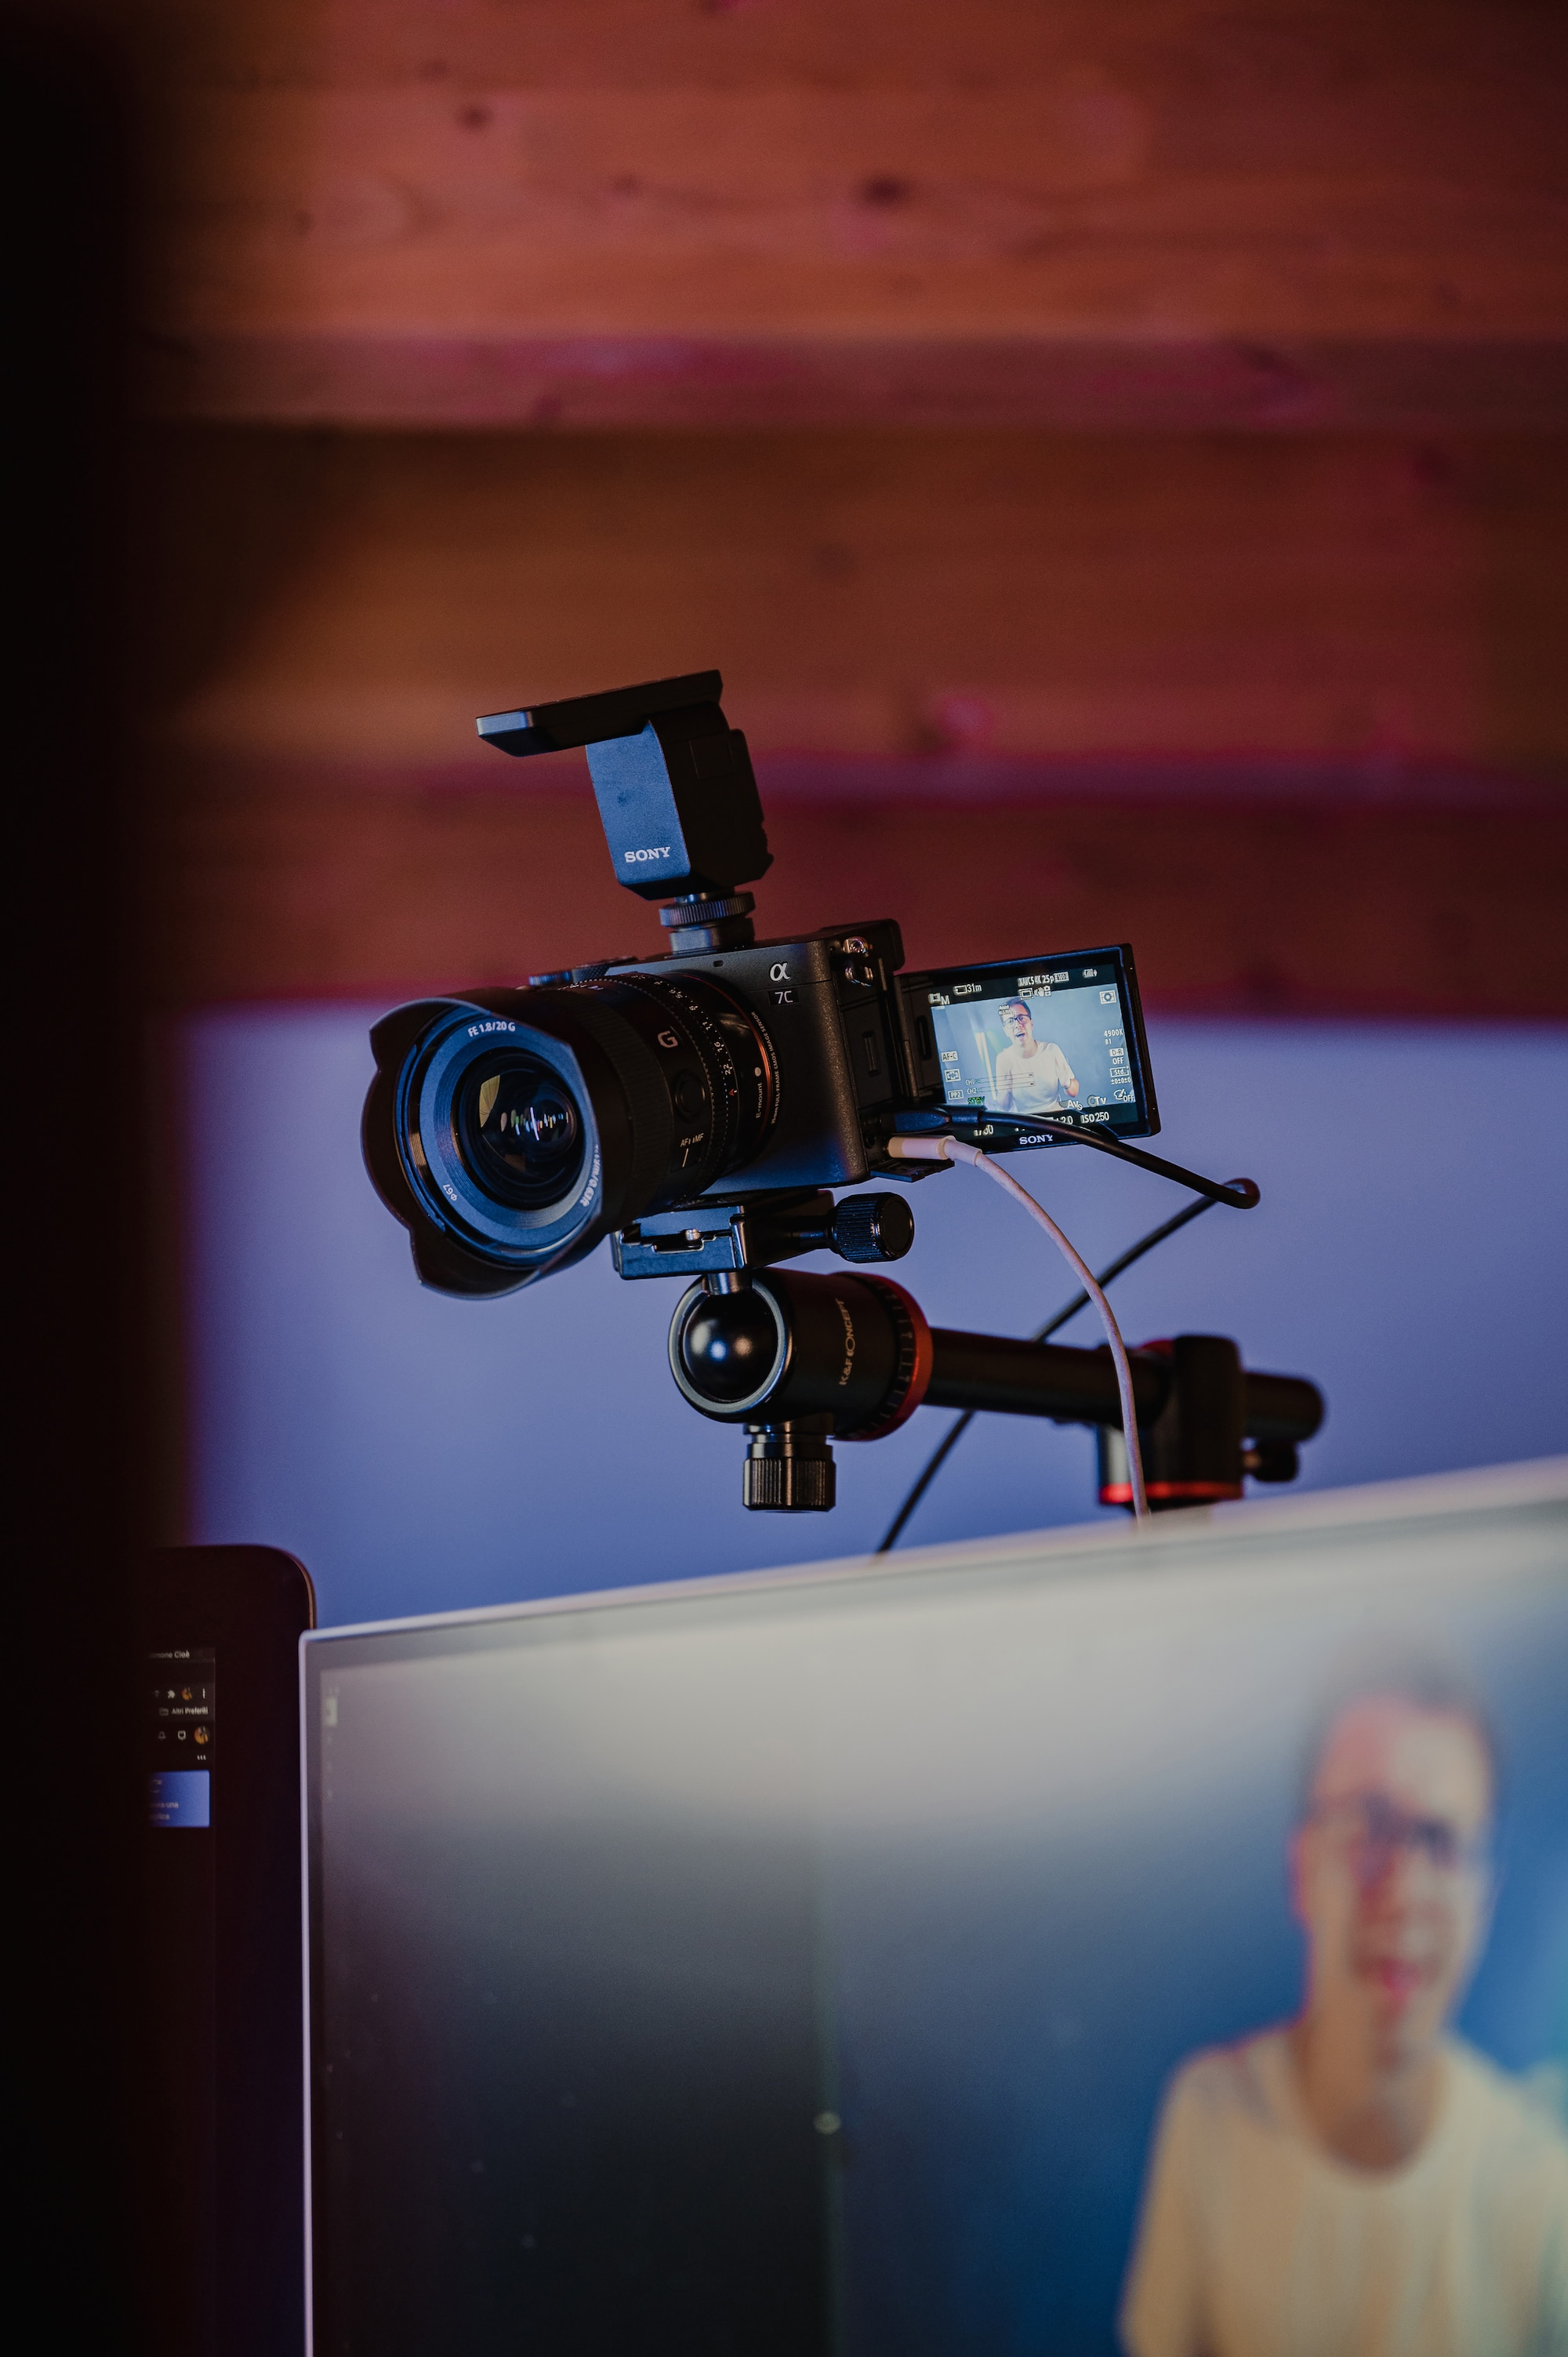 simone-cioe-sony-alpha-7c-mounted-above-a-monitor-with-microphone-attached